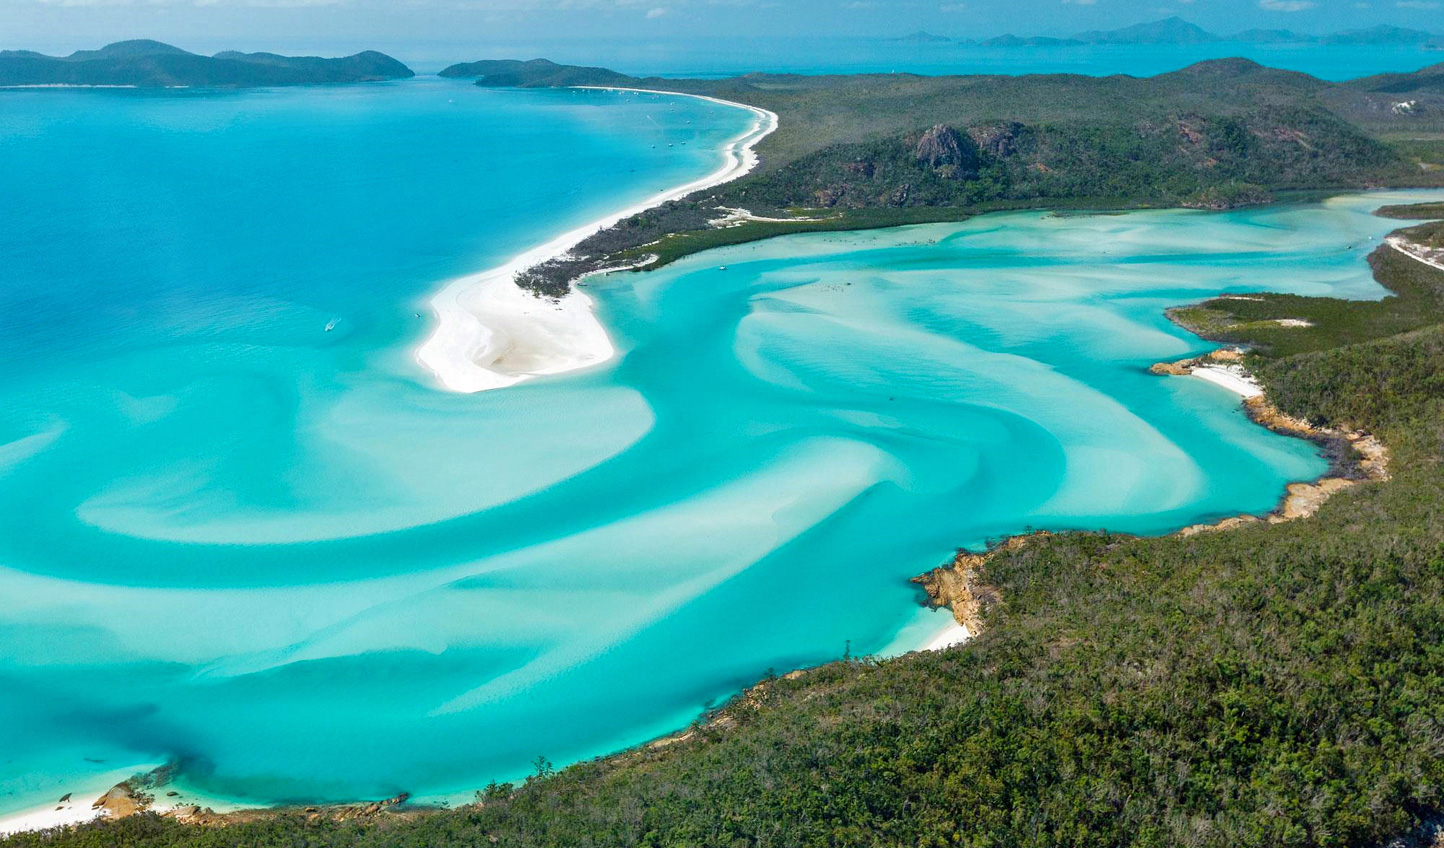 The swirling blue hues of the Whitsundays